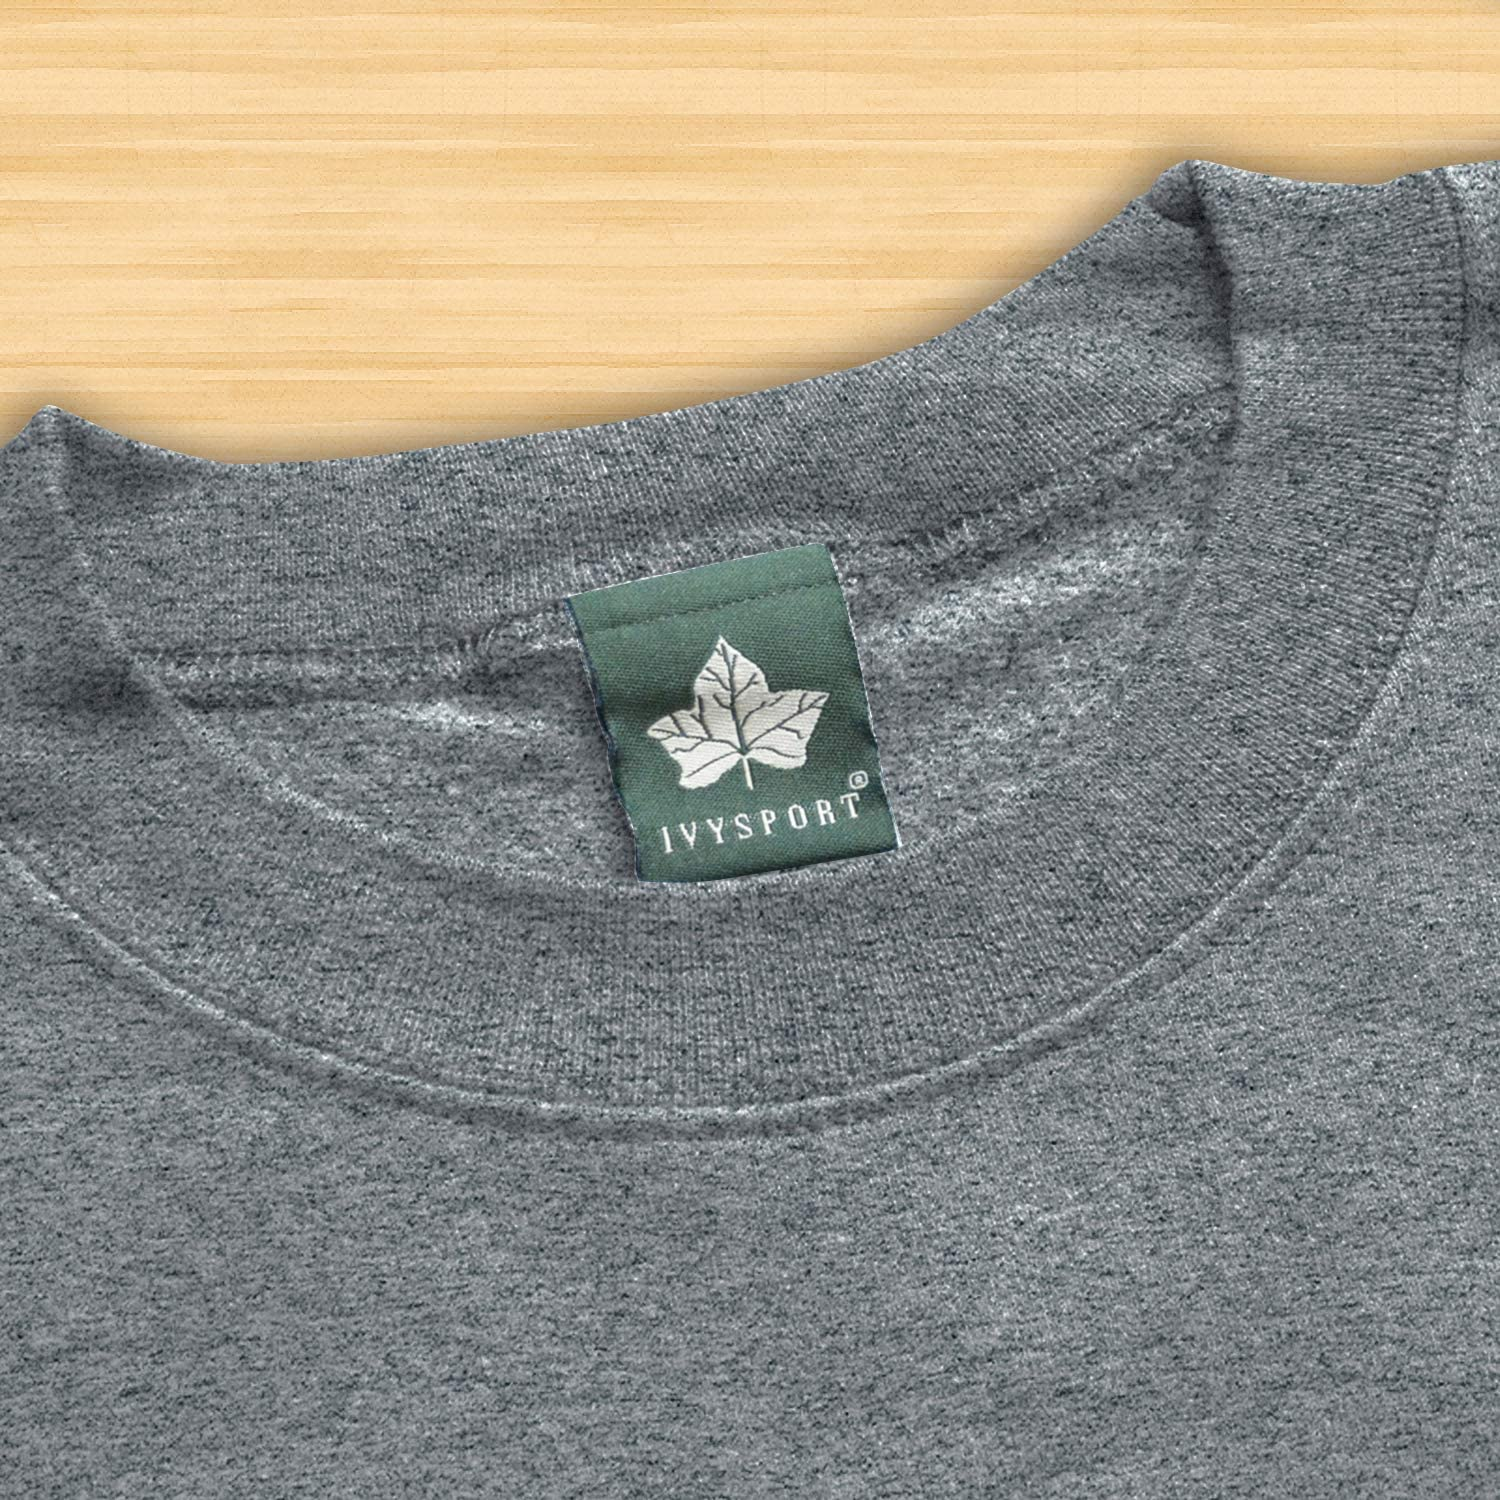 Heritage Logo Grey Cotton//Poly Blend Ivysport Hooded Sweatshirt NCAA Colleges and Universities